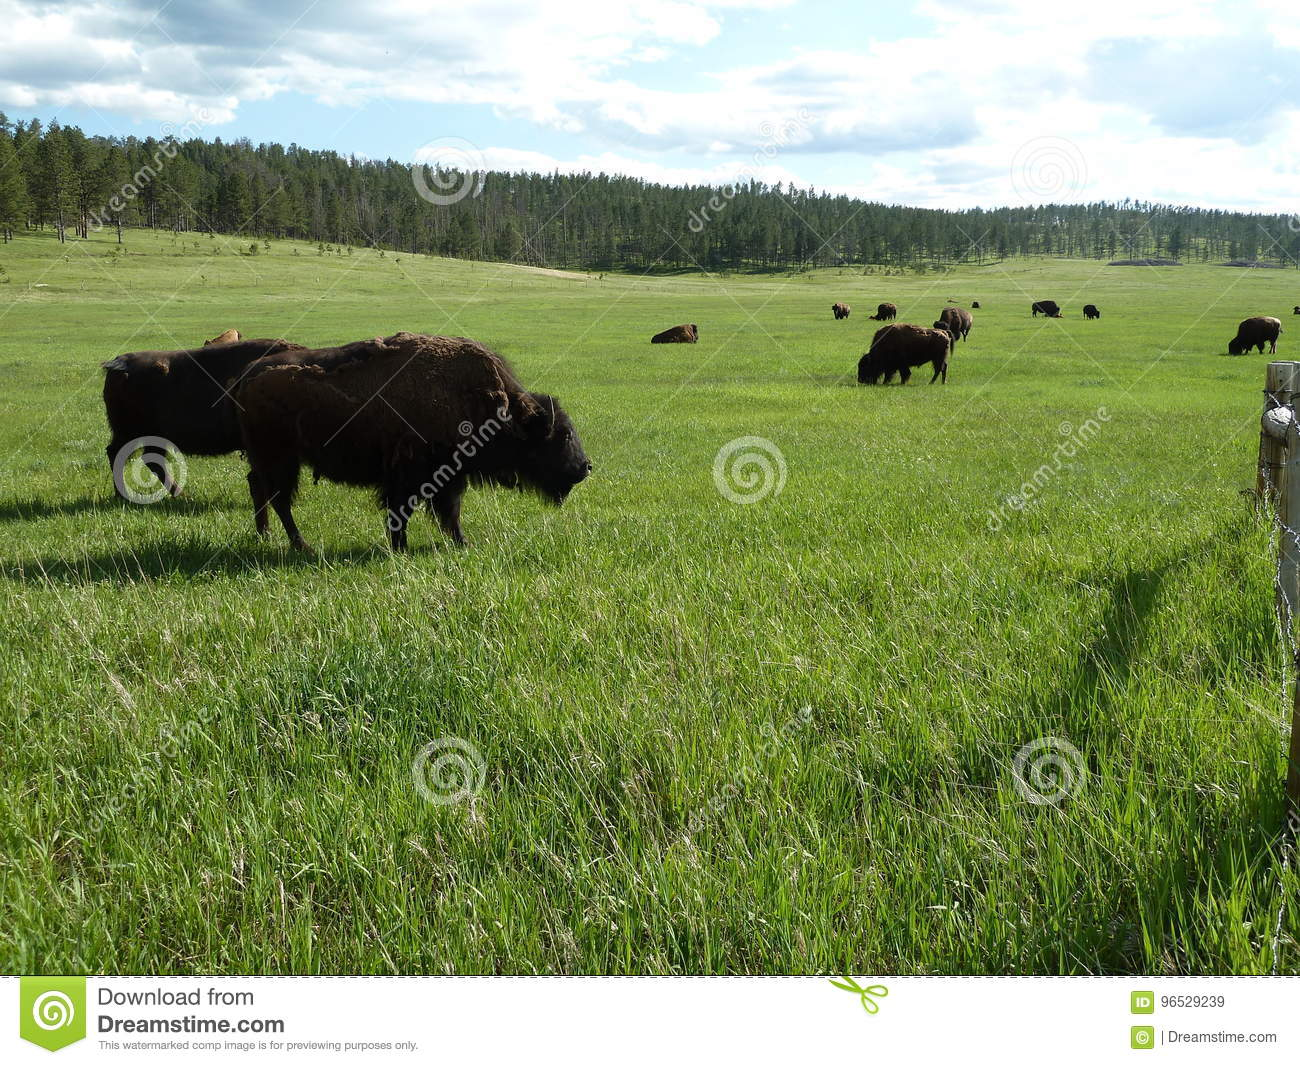 Bison grazing in a field in Eastern Wyoming